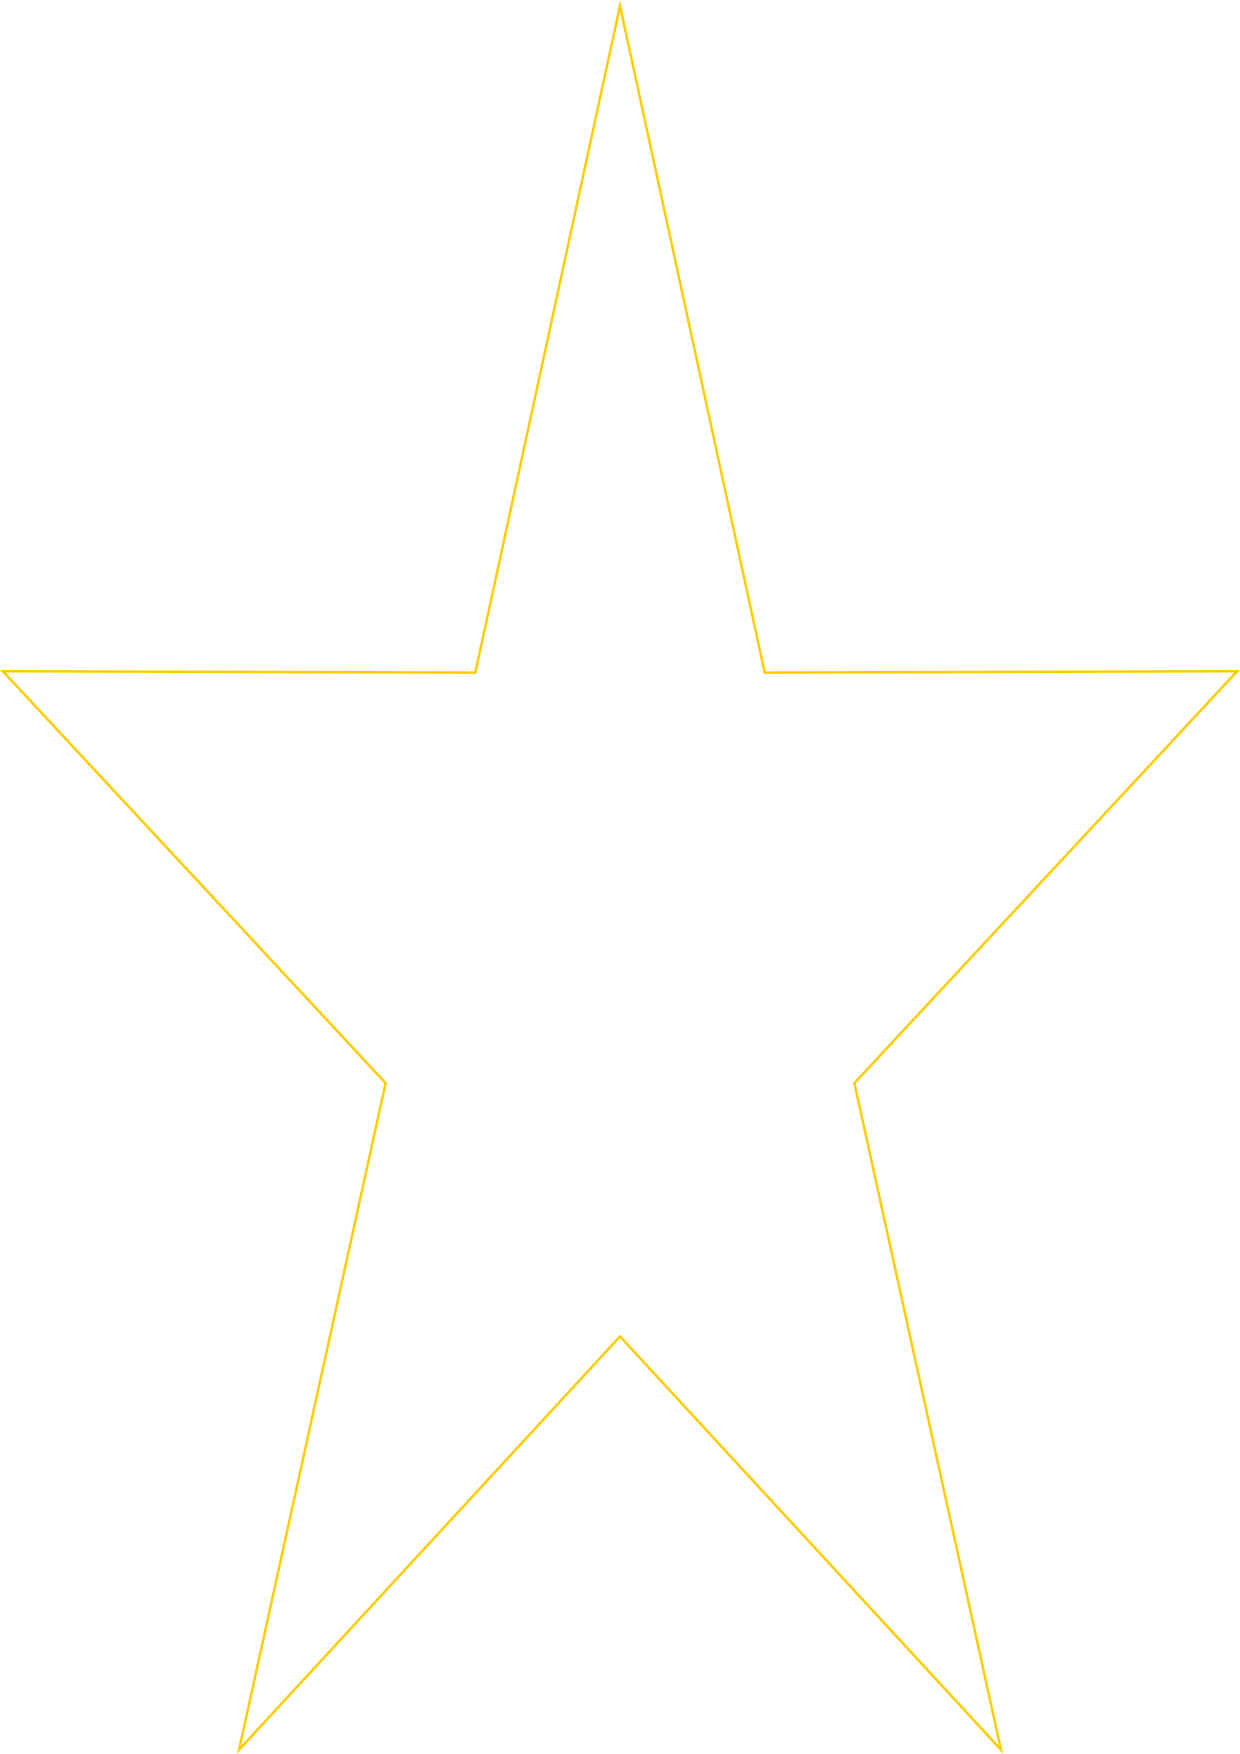 Yellow outline of a star